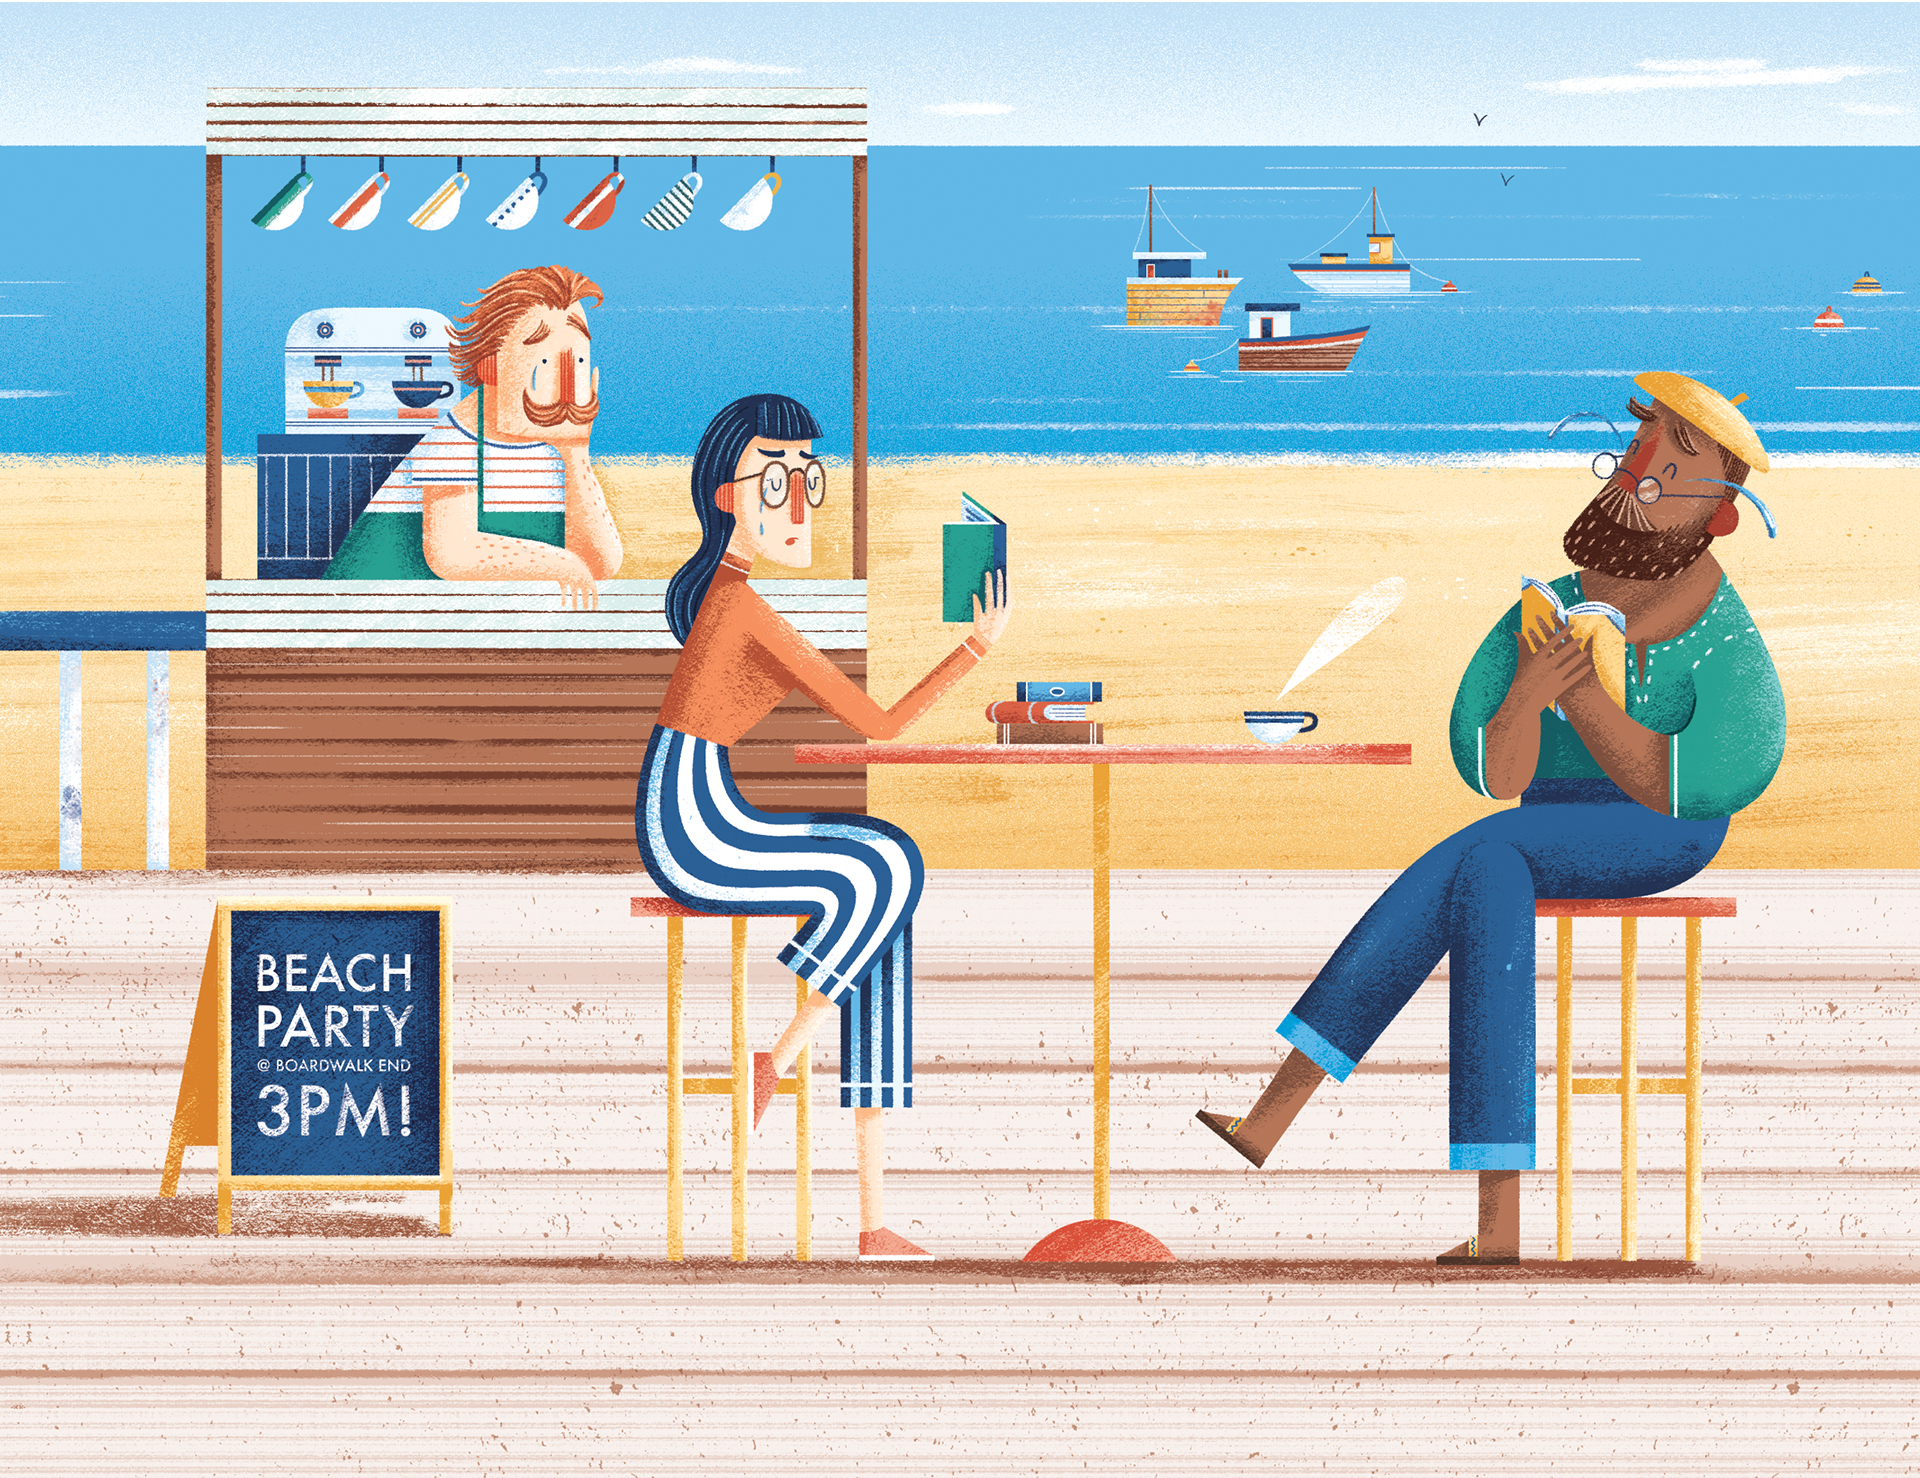 'Coffee on the boardwalk' © Jonty Howley Illustration